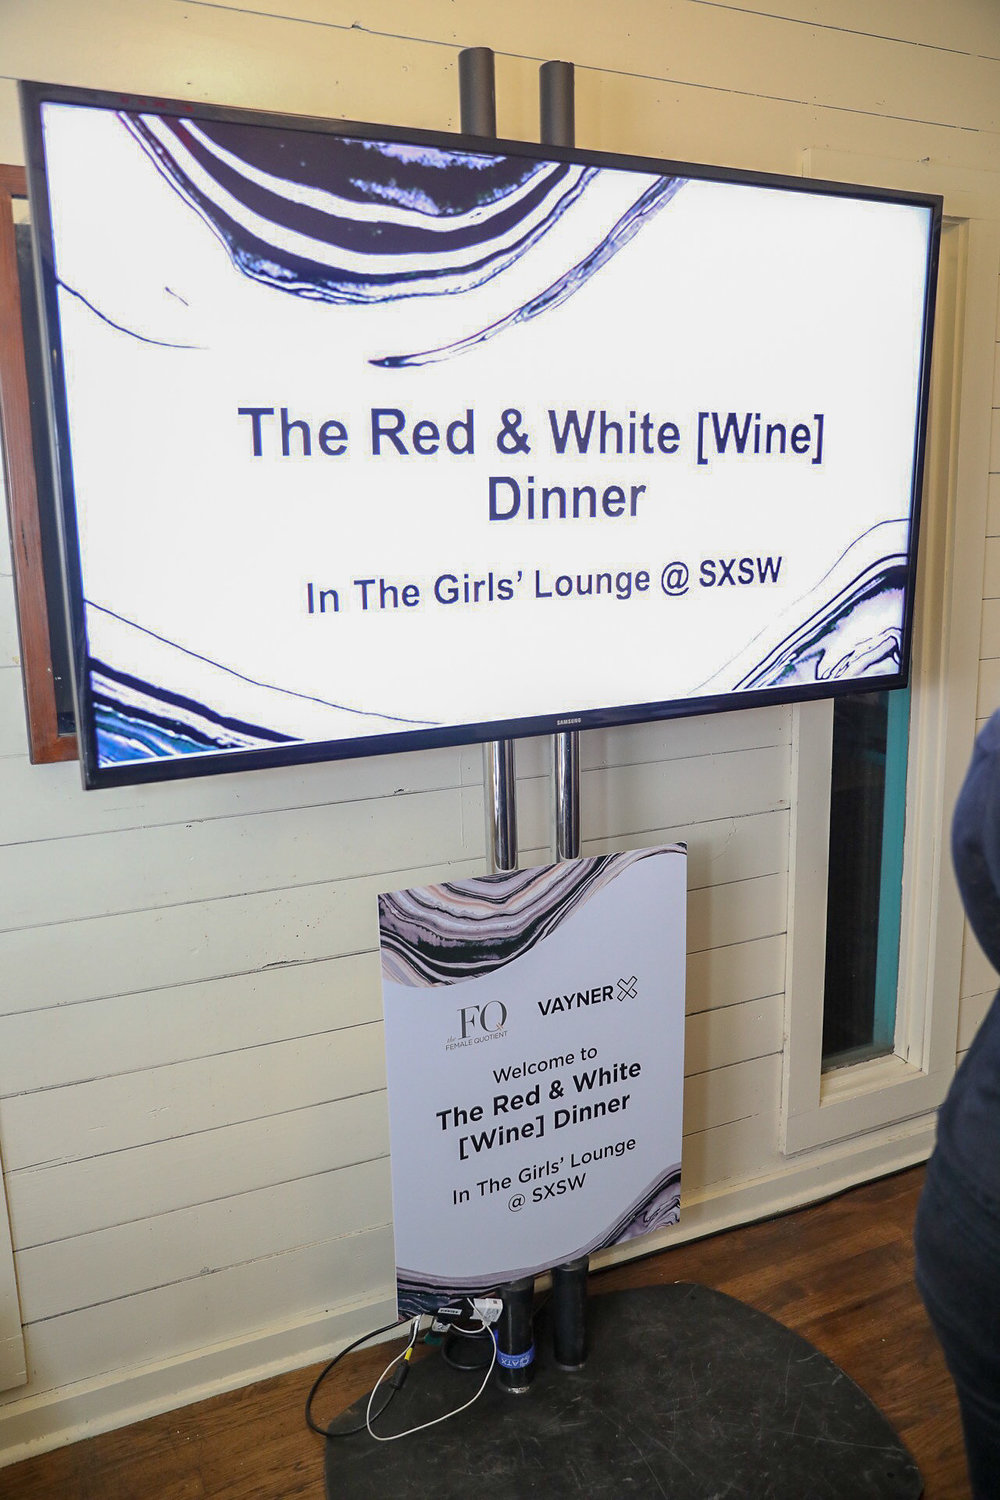 Signage for a dinner for SXSW 2018